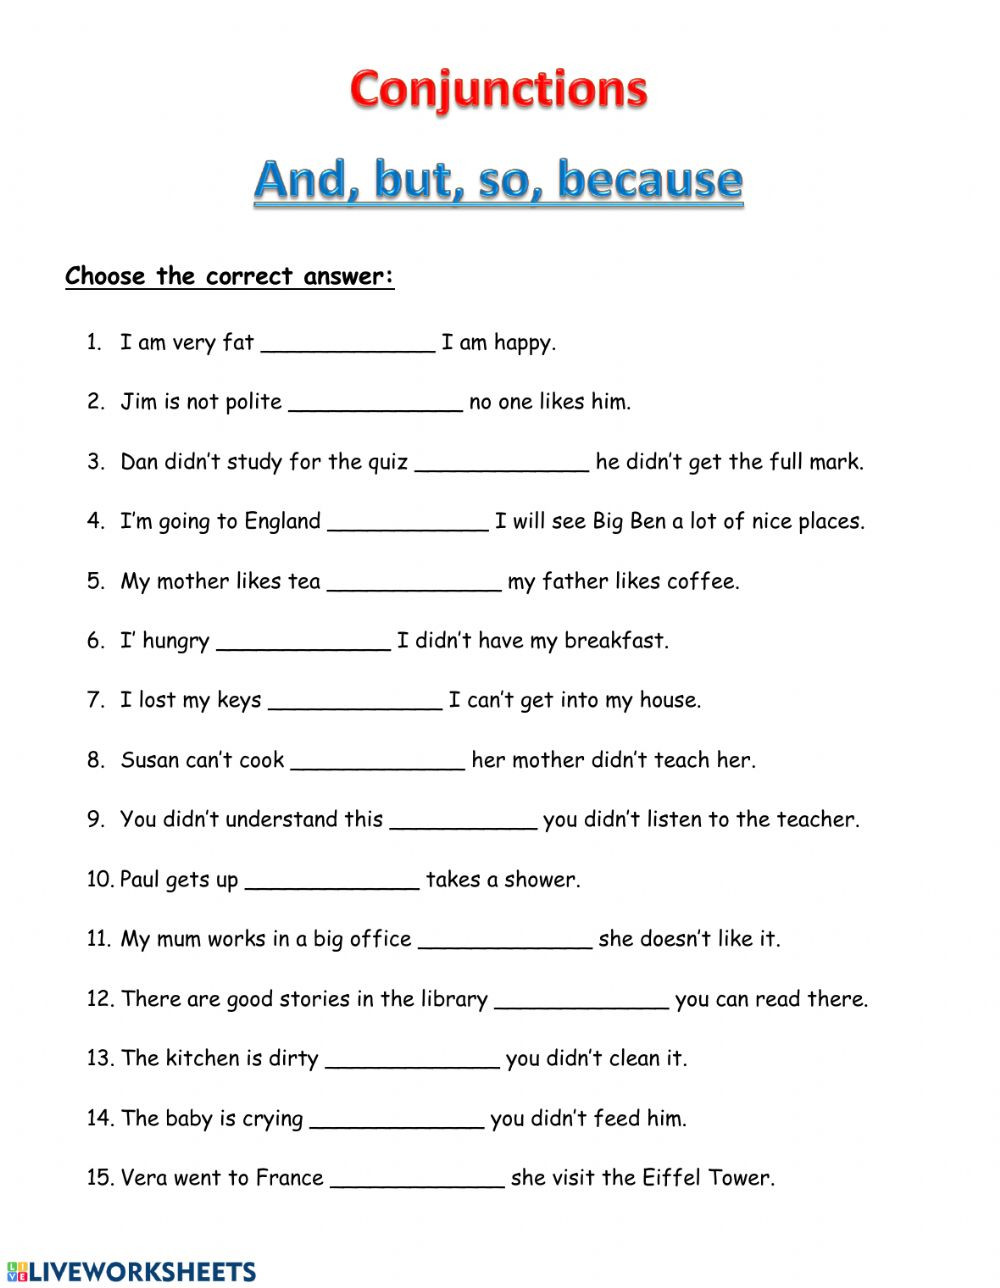 Conjunctions Worksheets for Grade 3 Conjunctions and but so because Interactive Worksheet